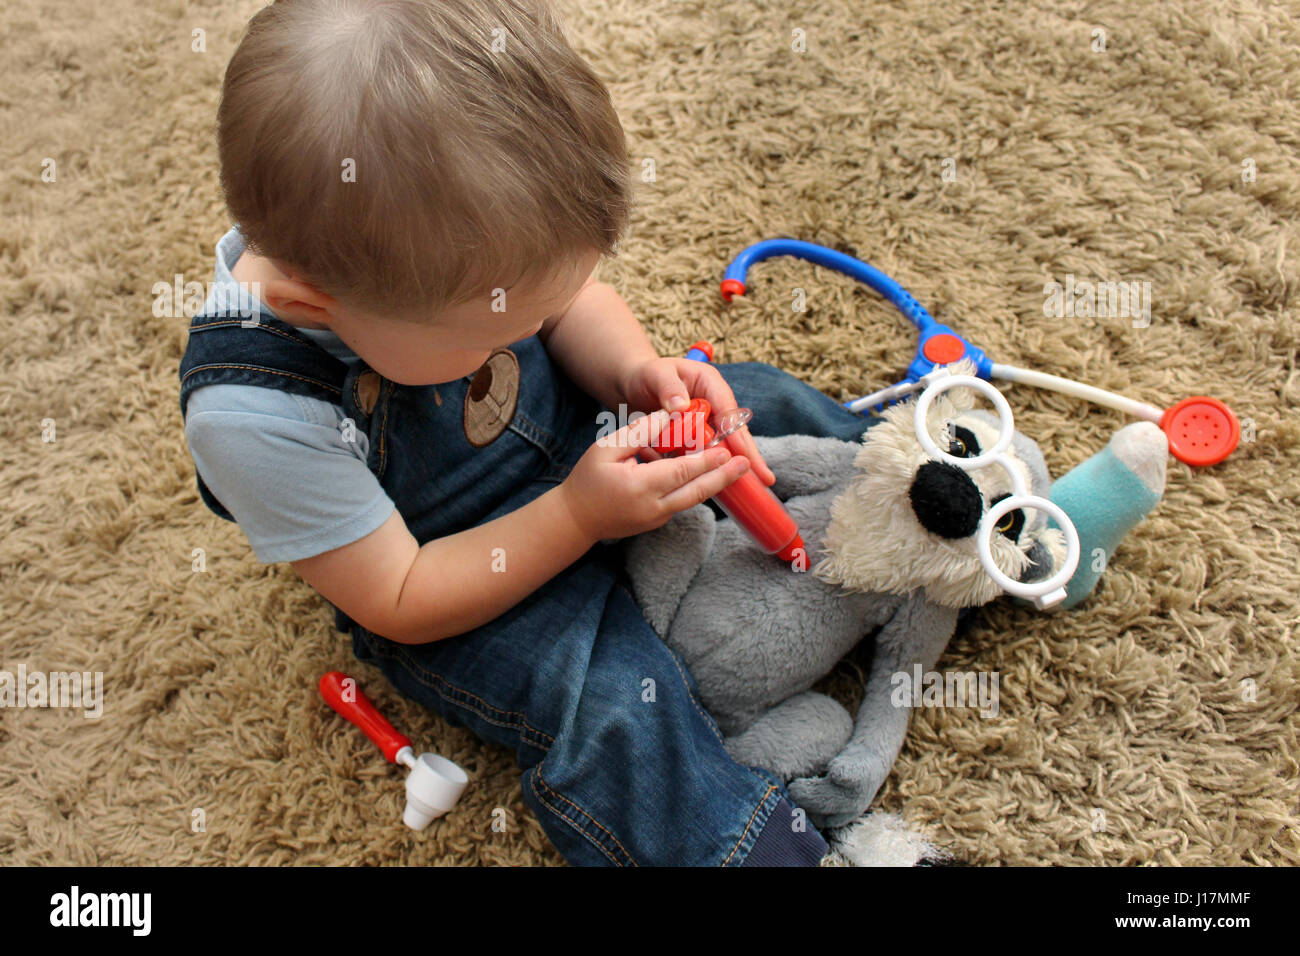 Toddler boy sitting on carpet playing doctor with his lemur stuffed toy - Stock Image